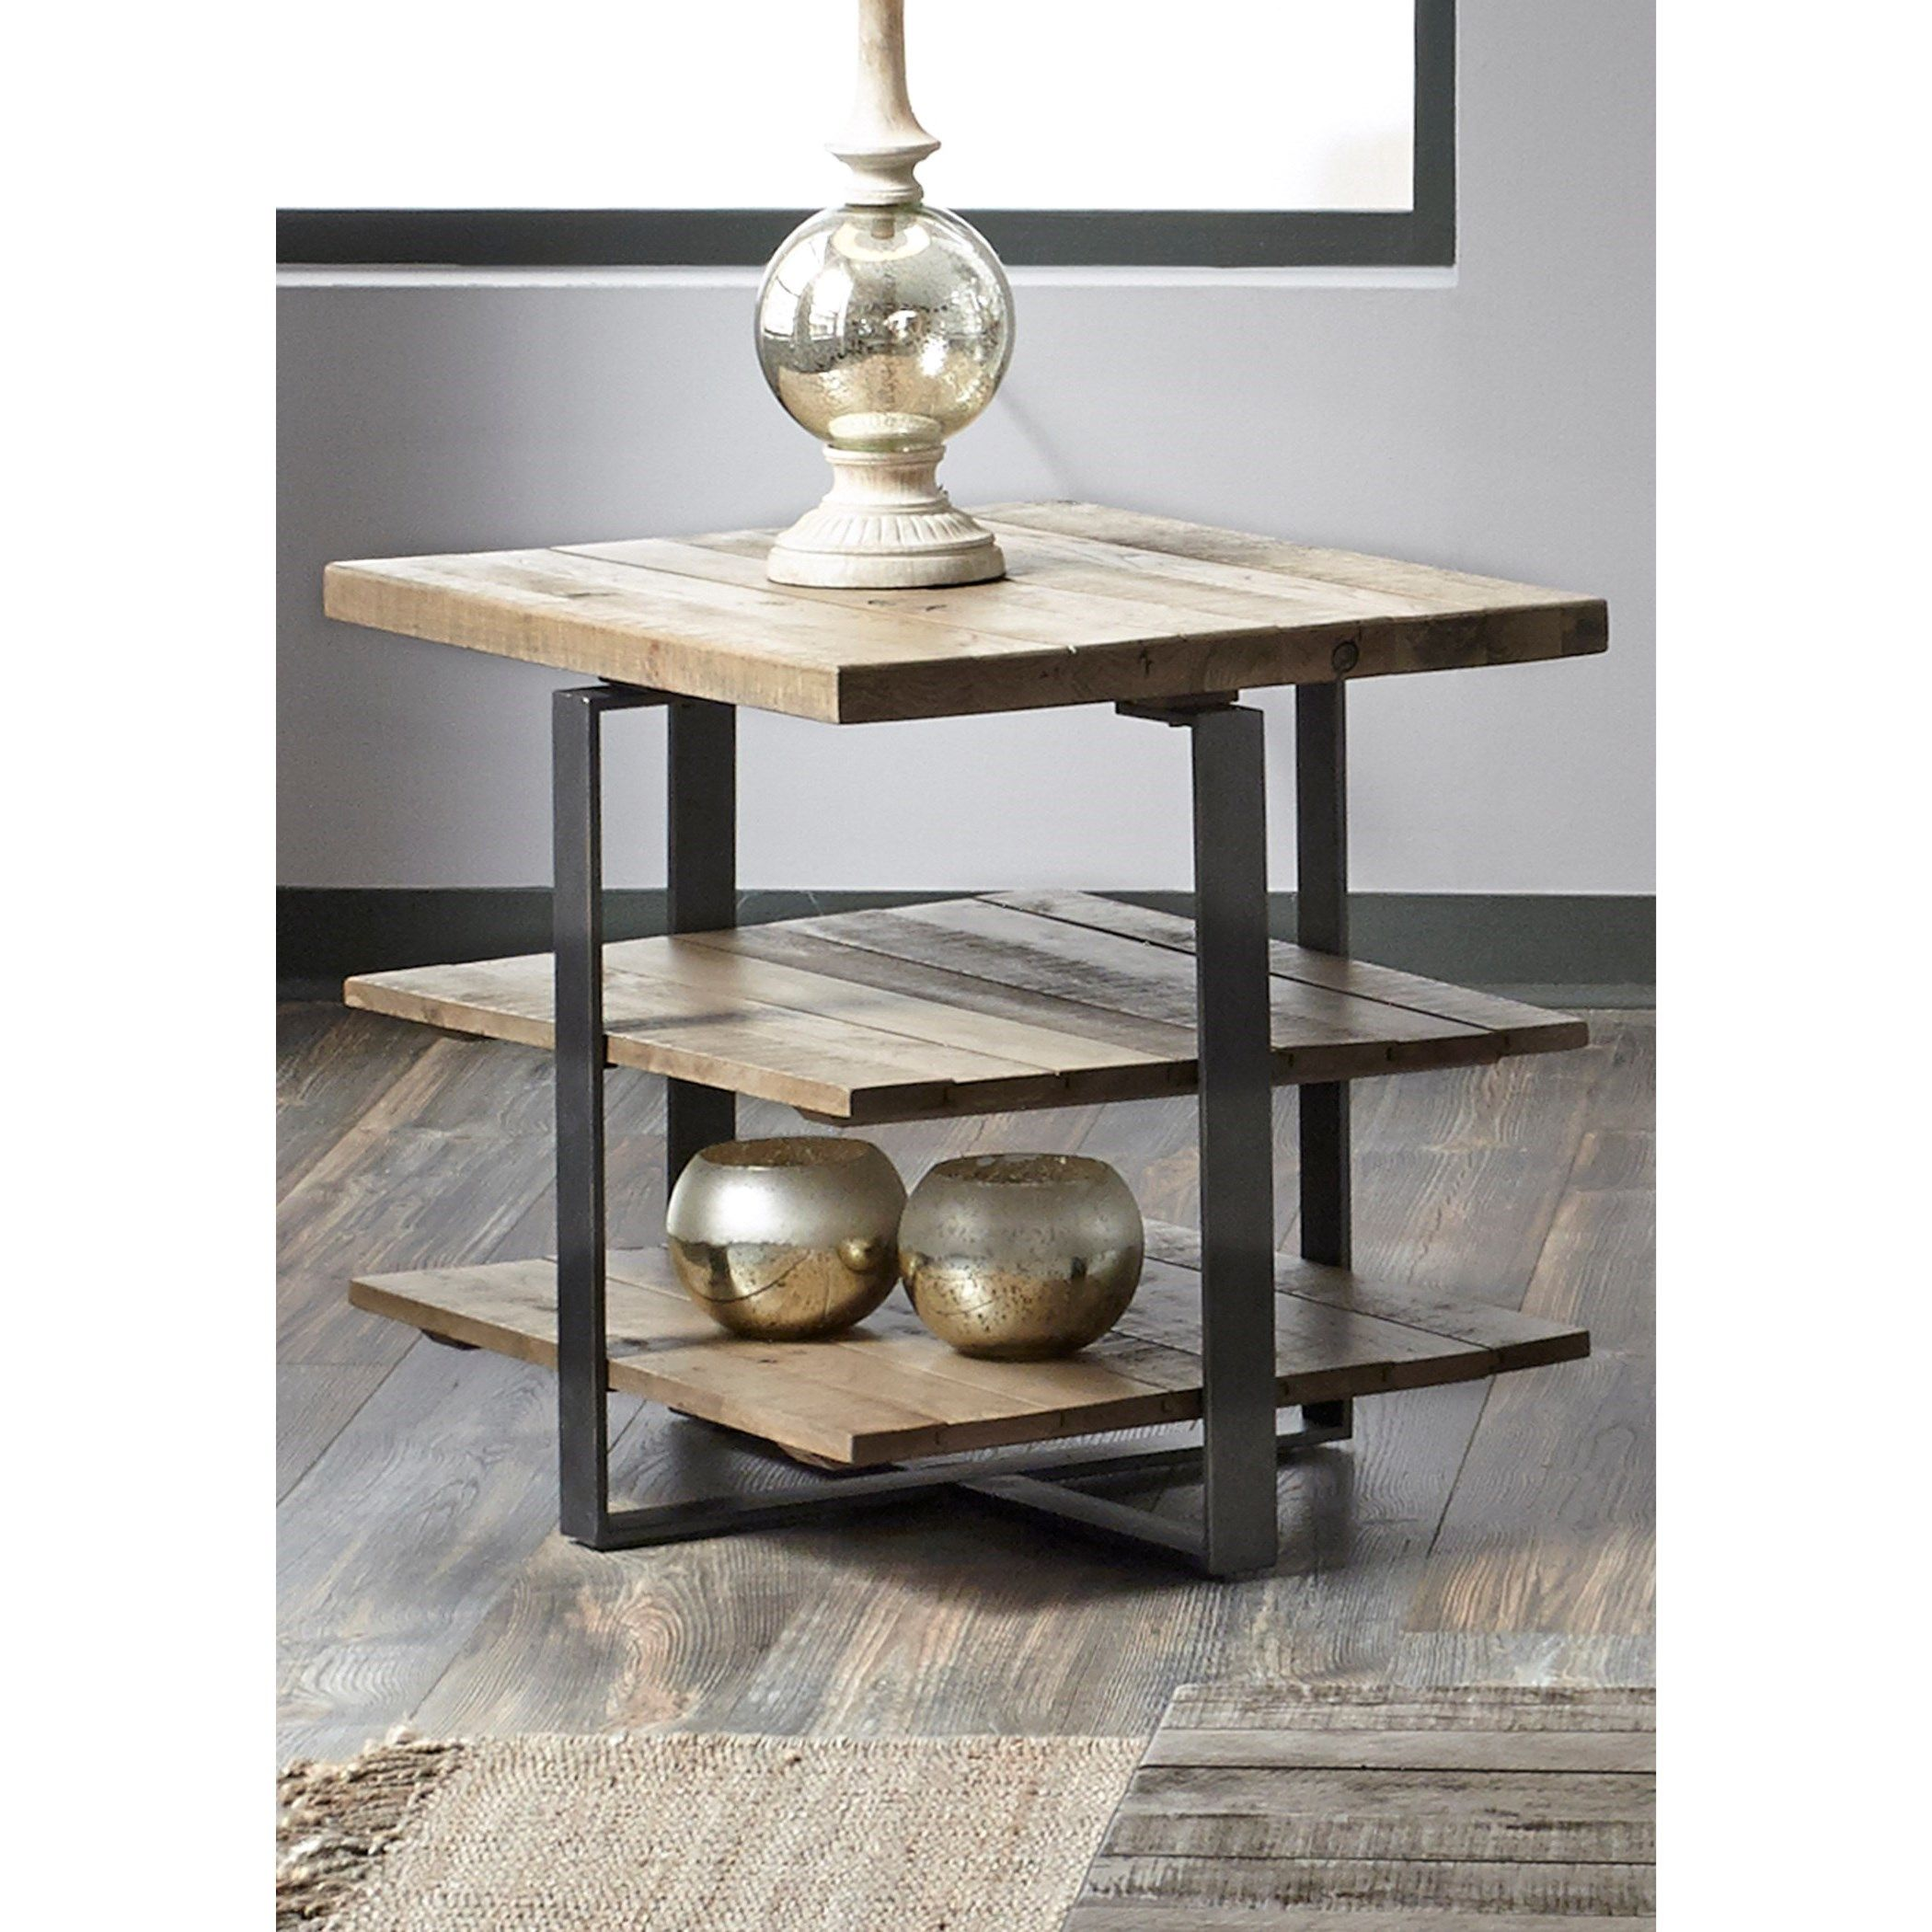 Pin By Nicola Diviesta On End Tables Liberty Furniture